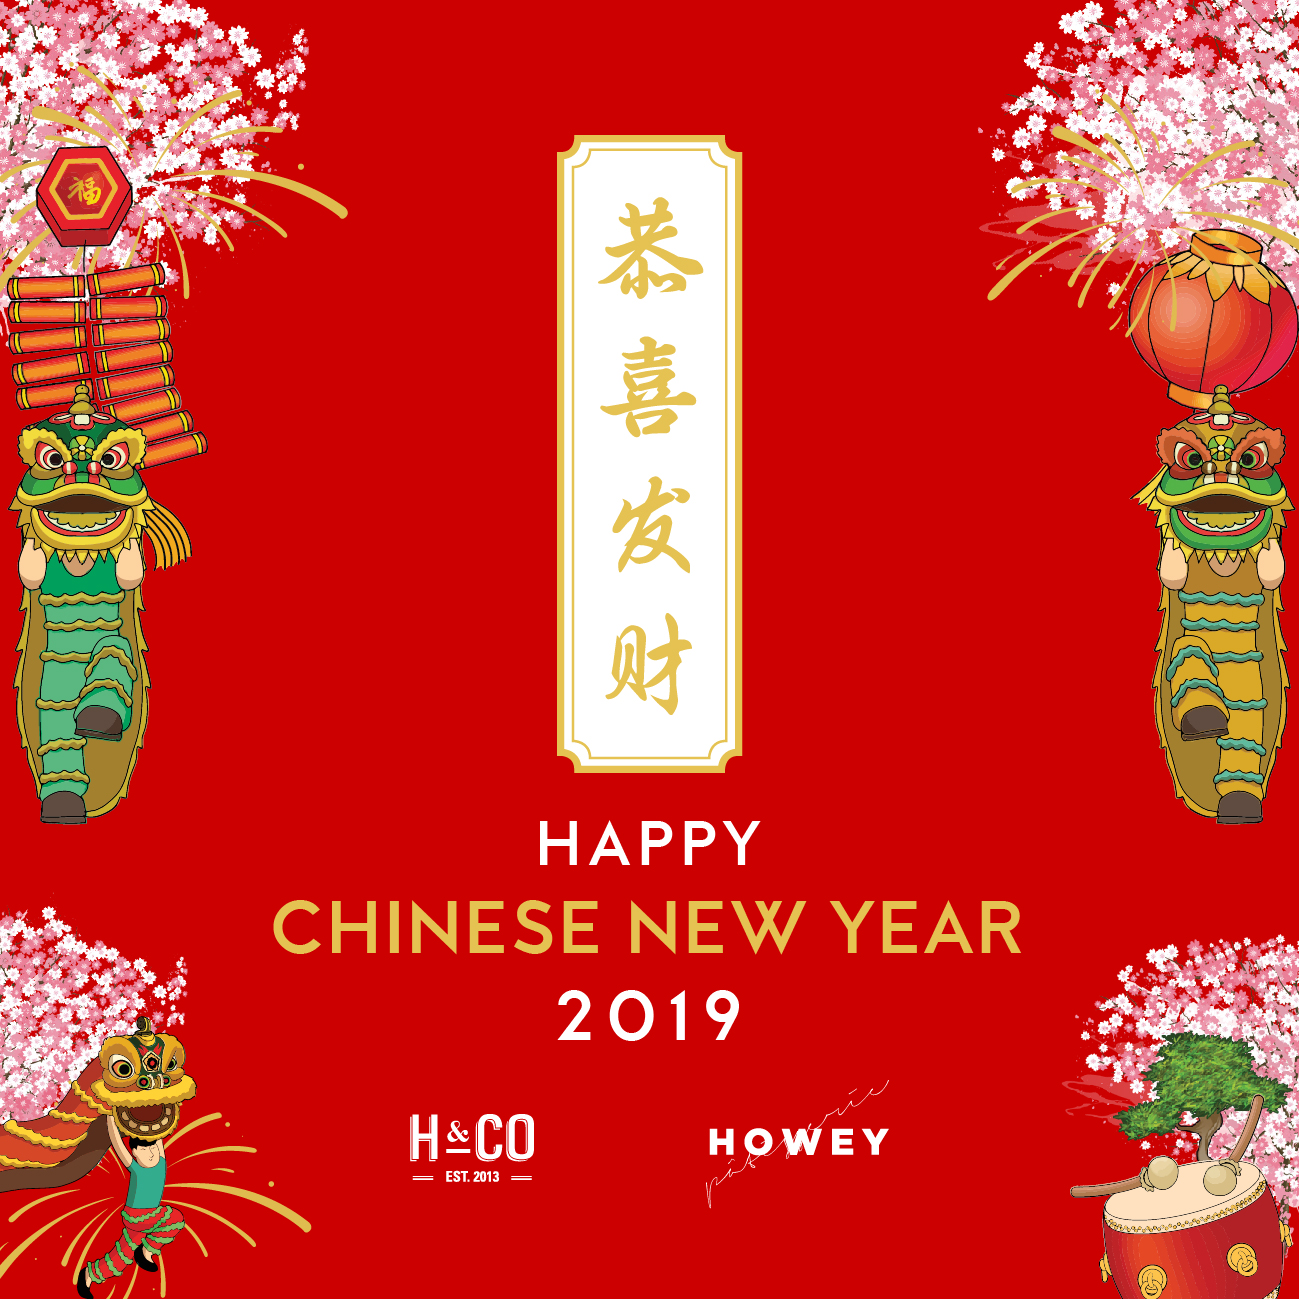 Happy Chinese New Year from H&CO image